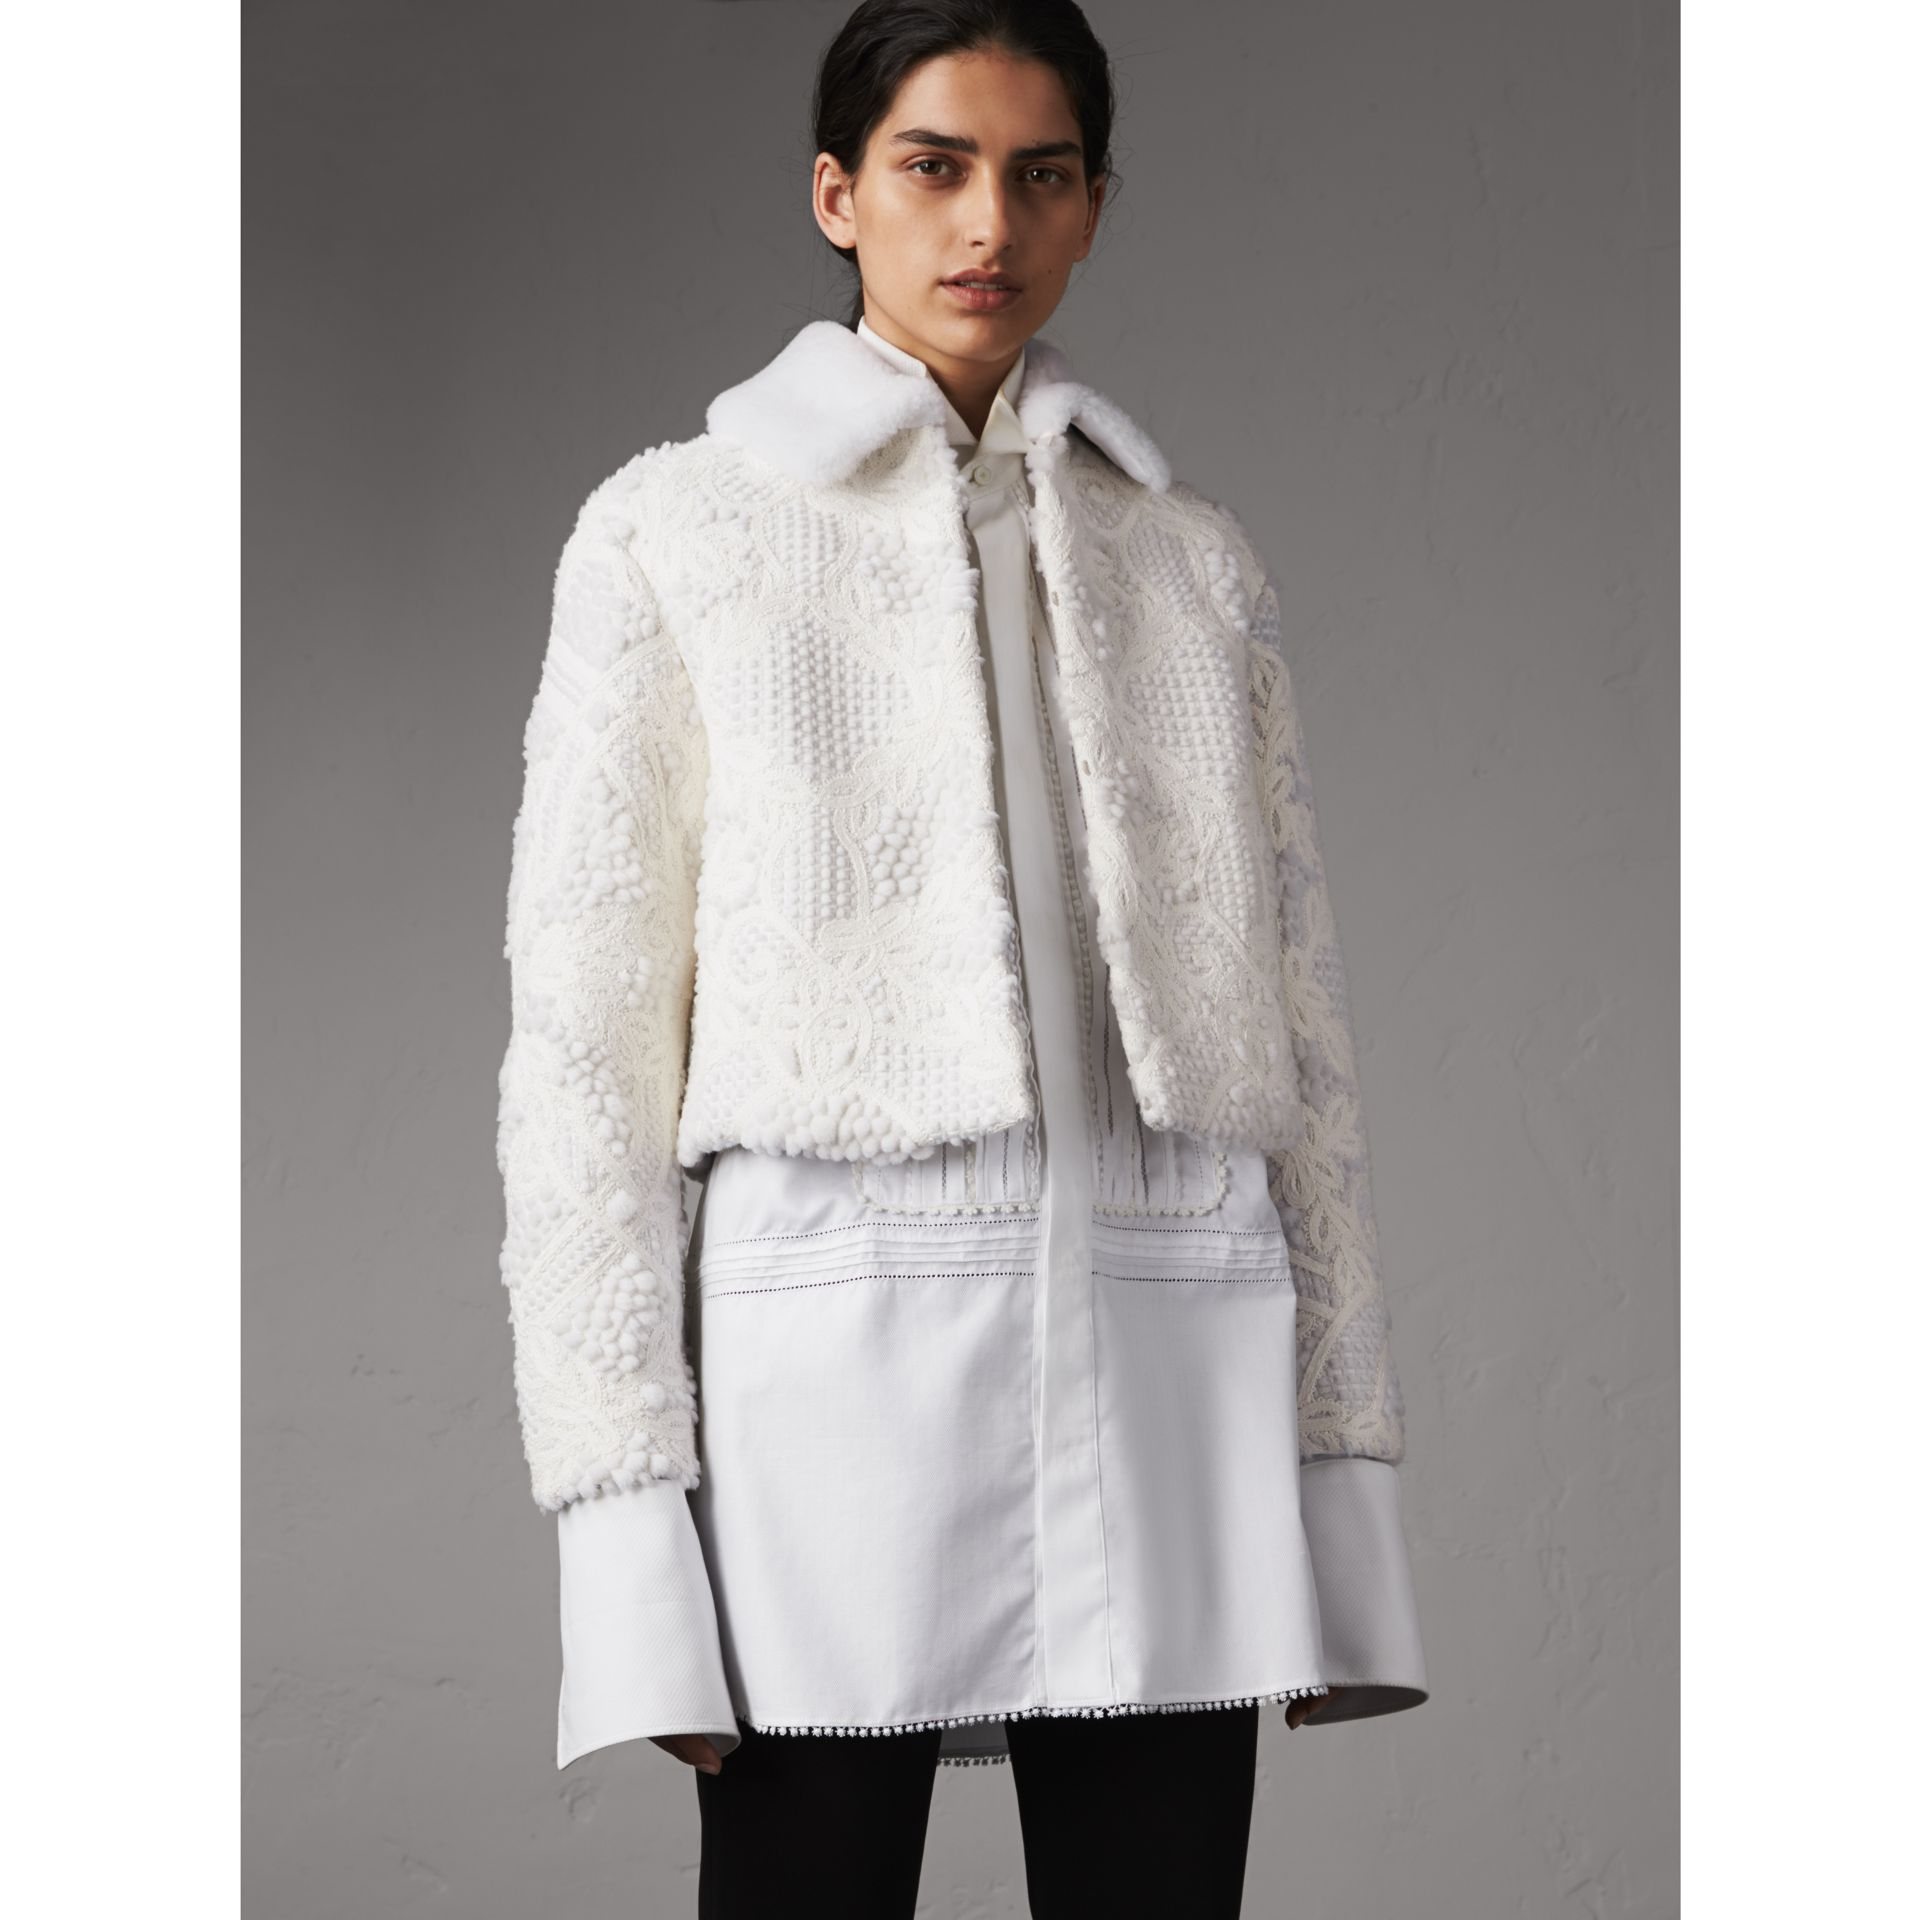 Macramé Lace-embellished Shearling Jacket in White - Women | Burberry Singapore - gallery image 1